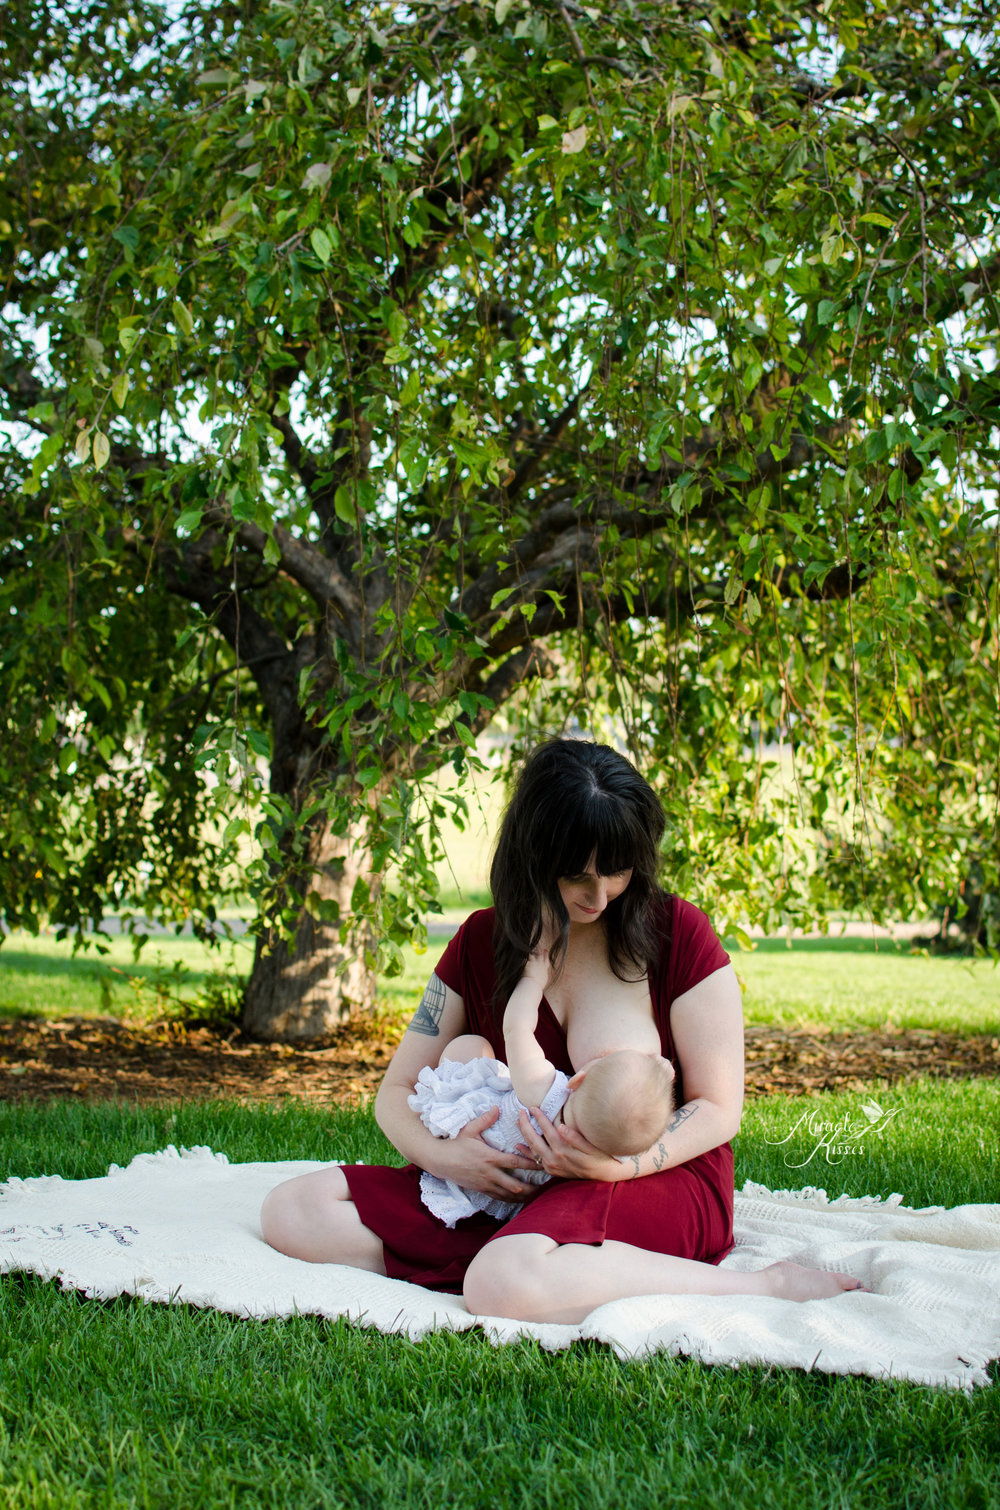 breastfeeding in public, 31 days 31 stories, lakewood breastfeeding photographer